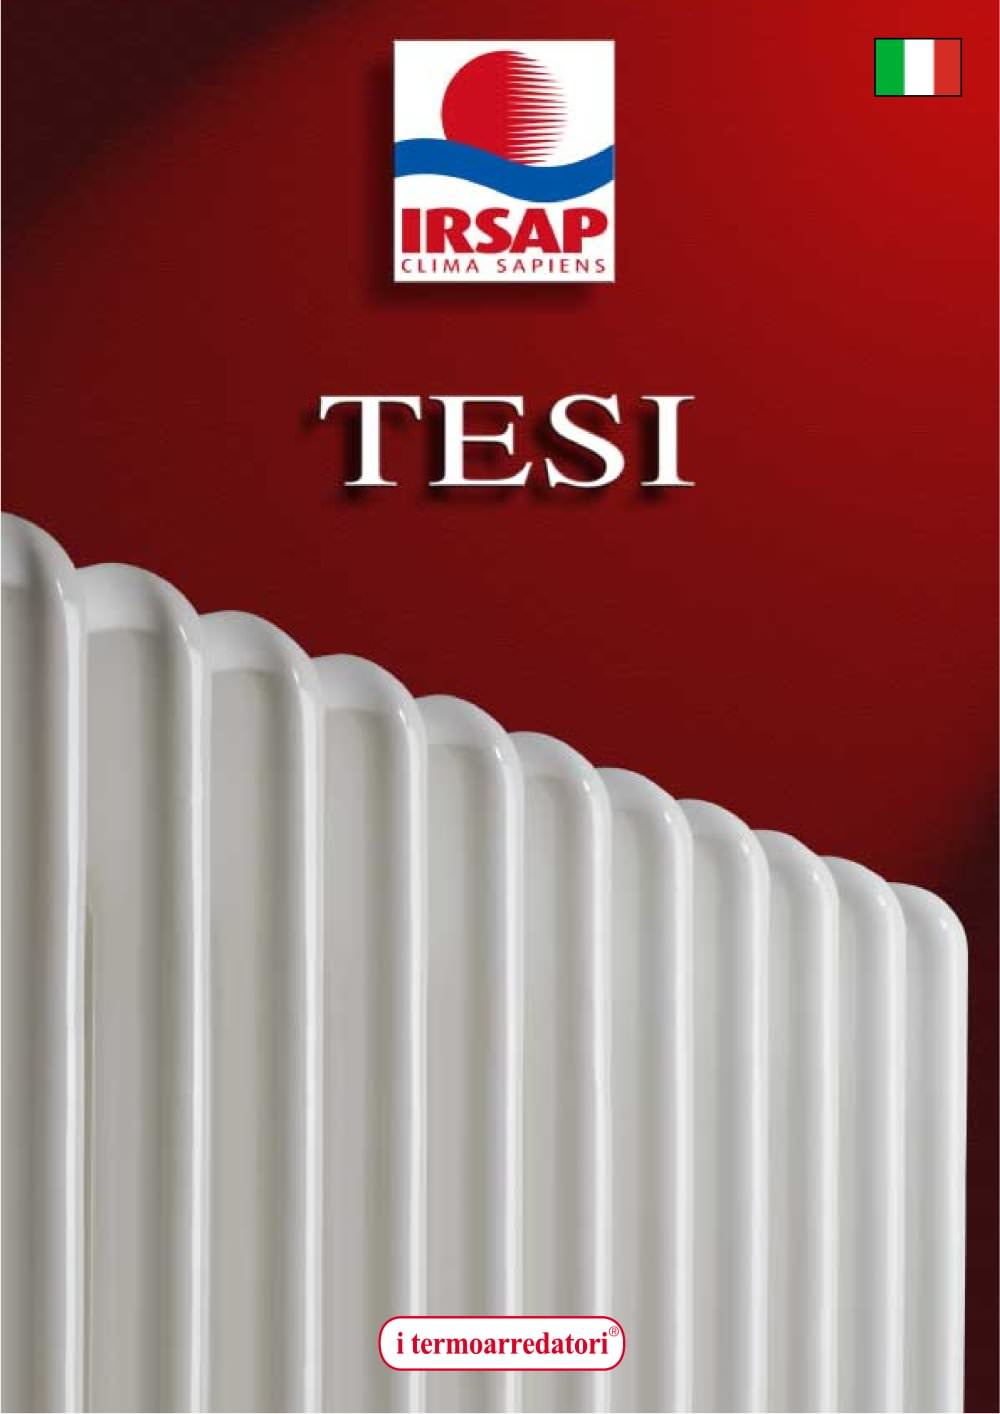 TESI - IRSAP - Catalogo PDF | Documentazione | Brochure